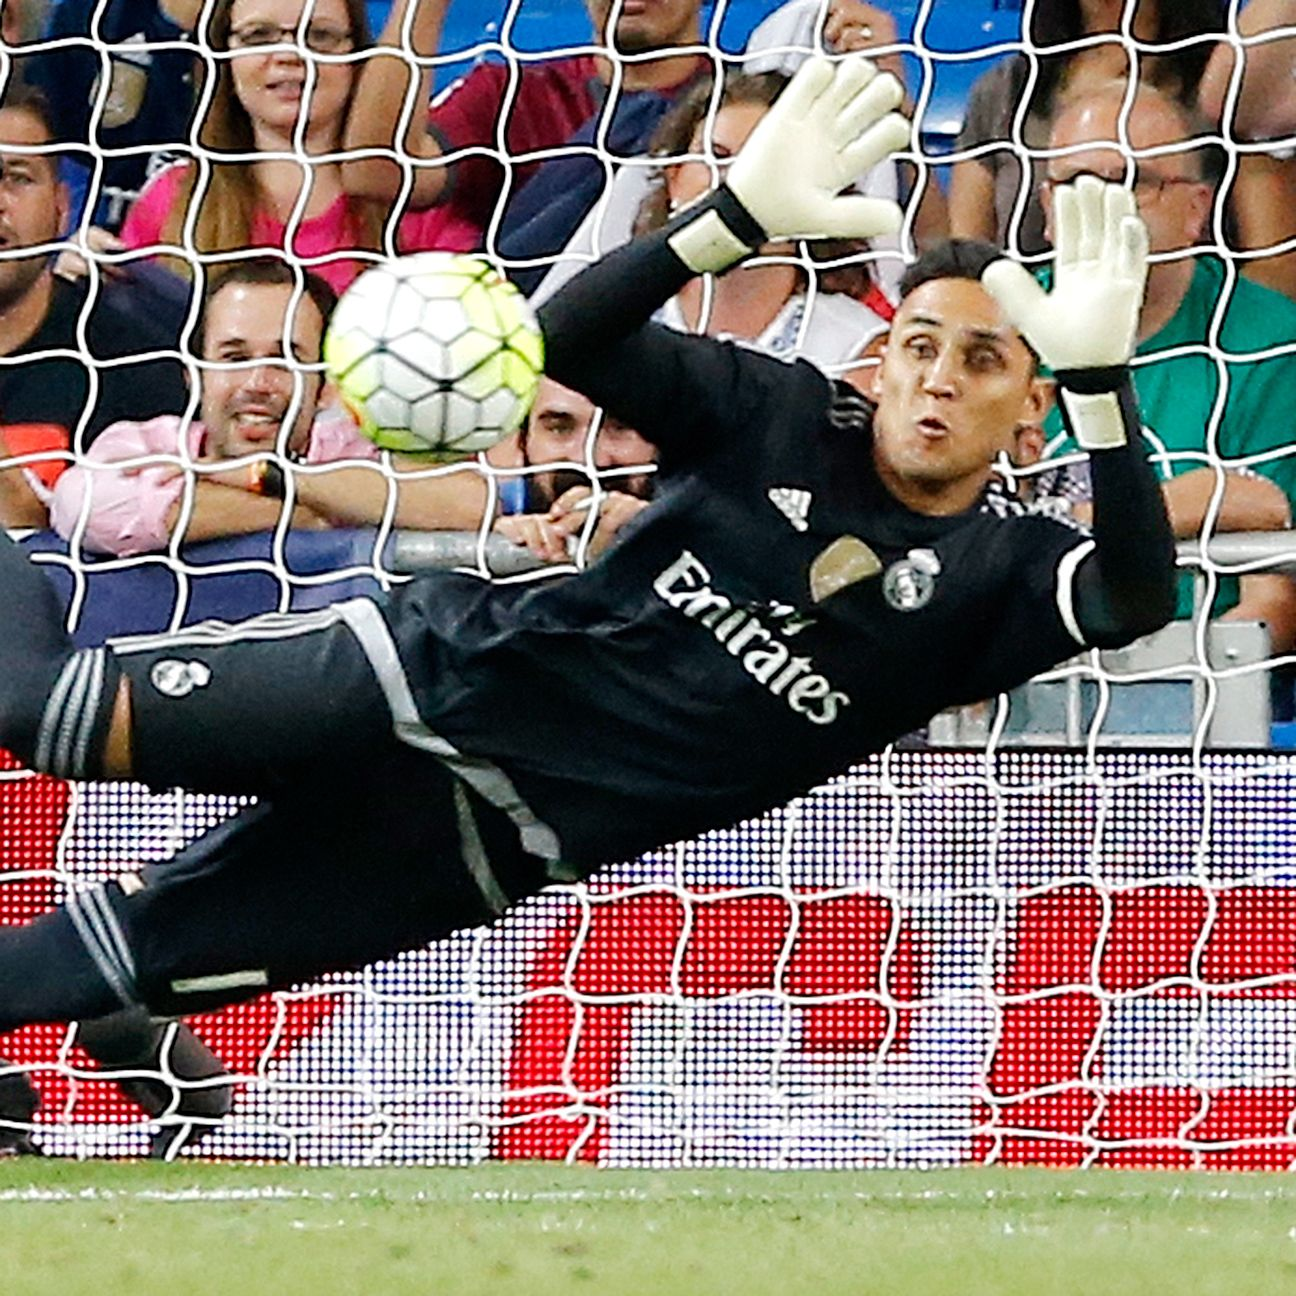 Real Madrid goalkeeper Keylor Navas has yet to concede this season in La Liga.